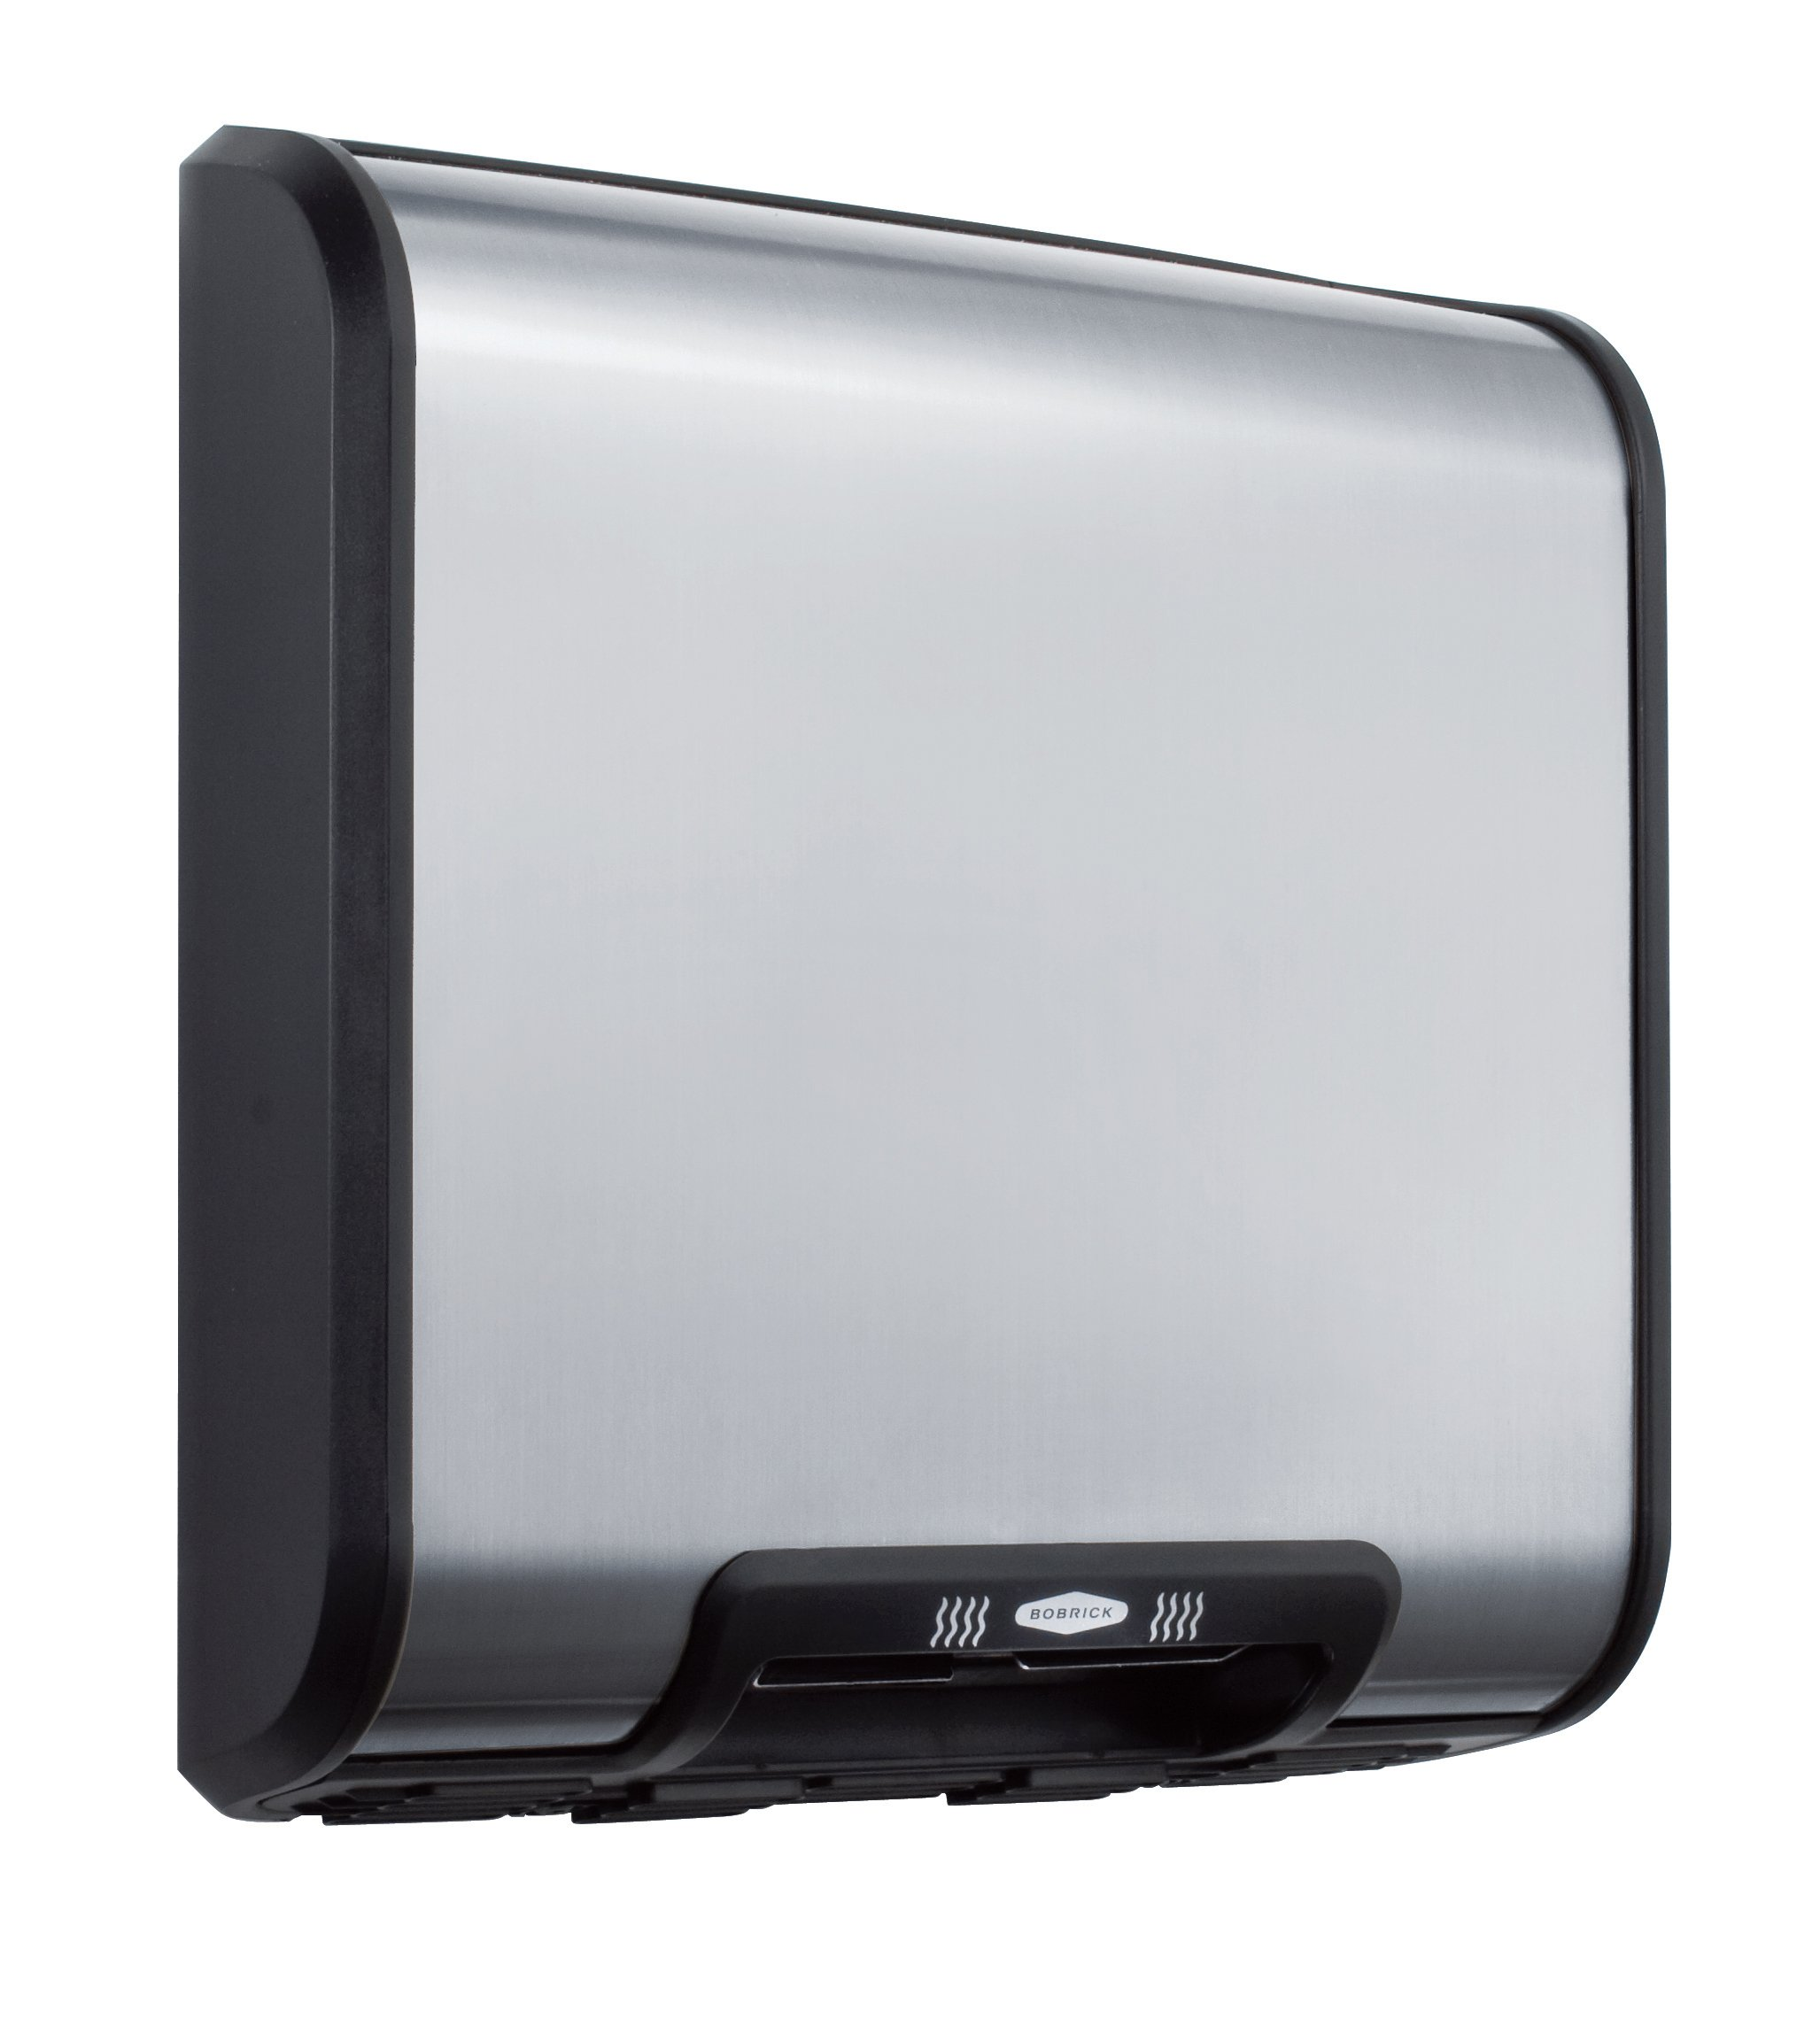 Bobrick 7128 TrimLineSeries 304 Stainless Steel ADA Surface-Mounted Automatic Hand Dryer, Satin Finish, 230V